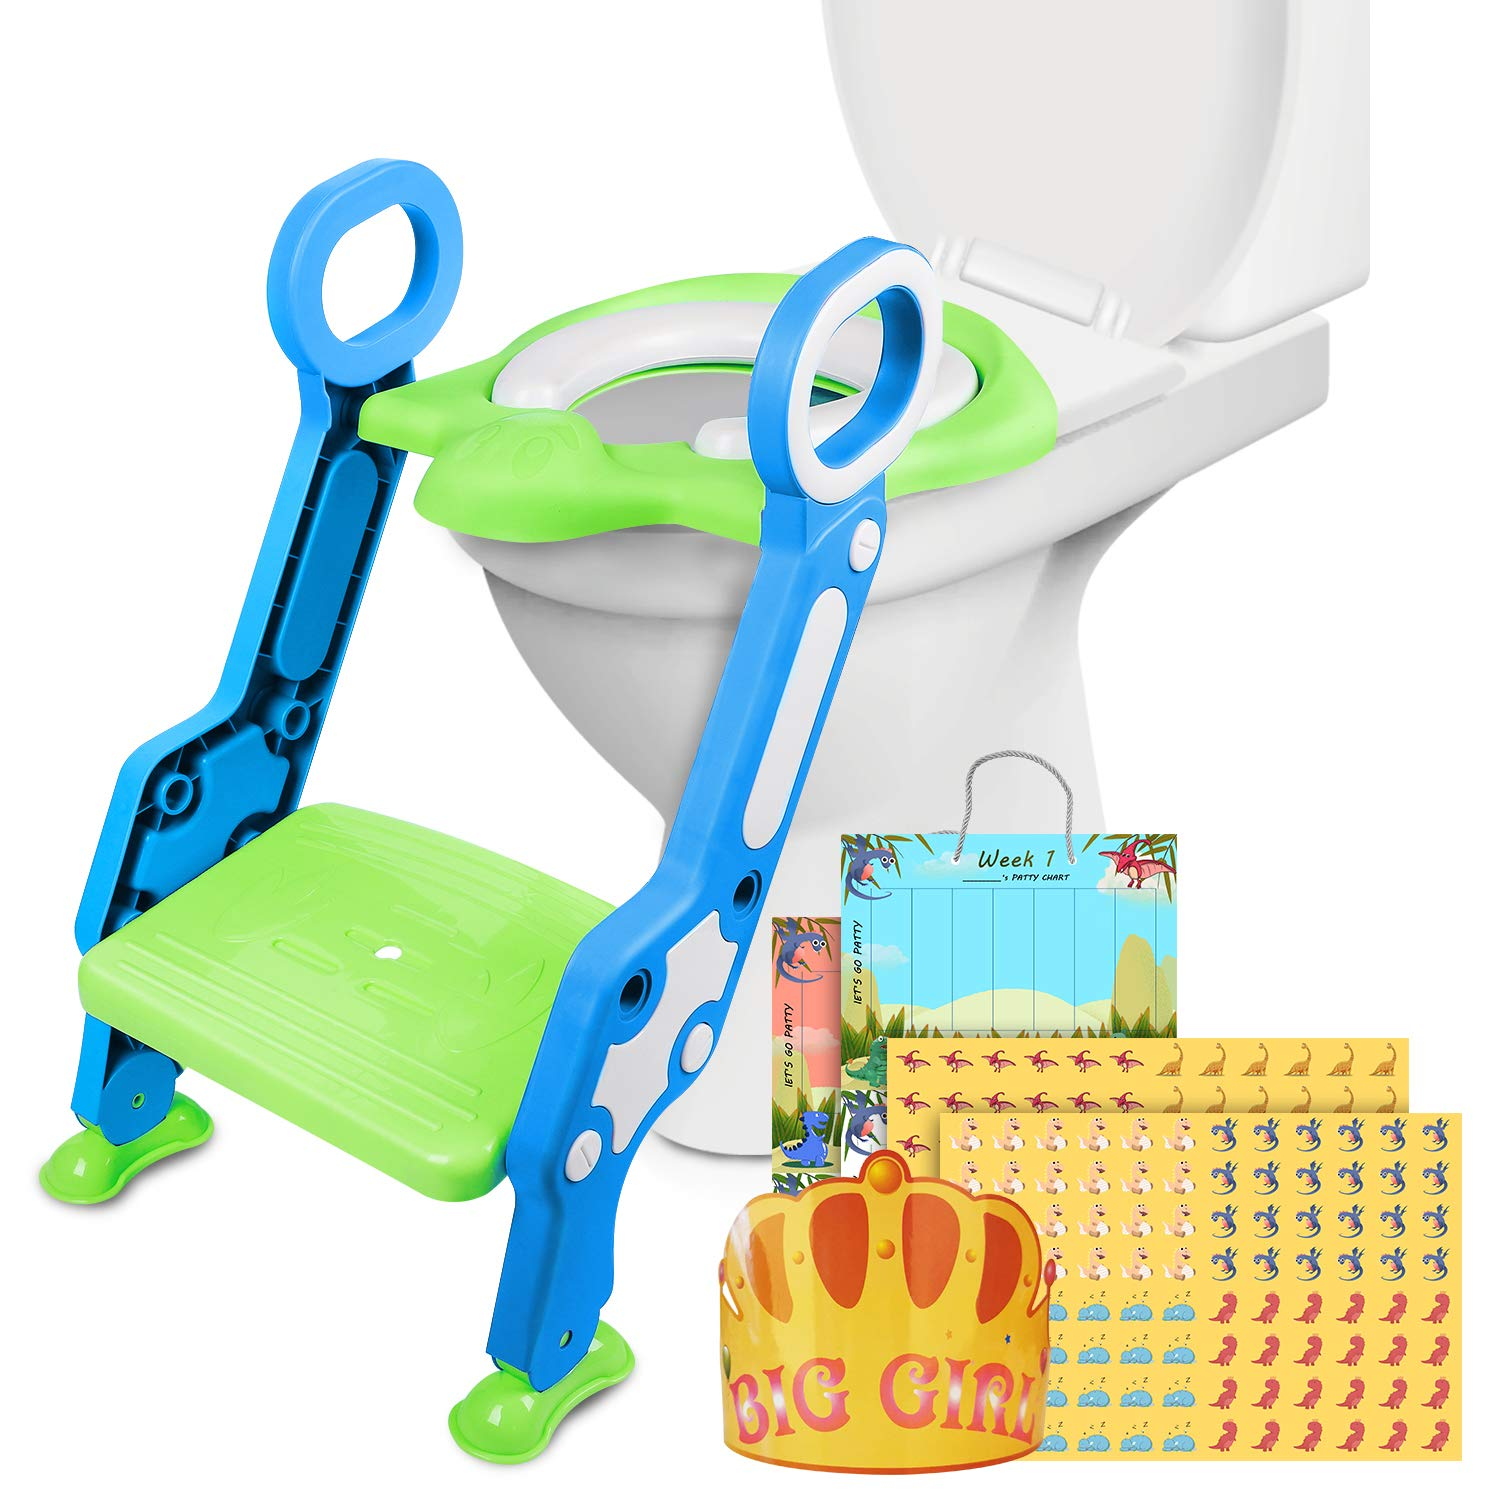 Non-Slip Adjustable Child Toilet Seat with Step Ladder, Potty Training Champion Card, Suitable for Boys and Girls (Green) by PITAYA